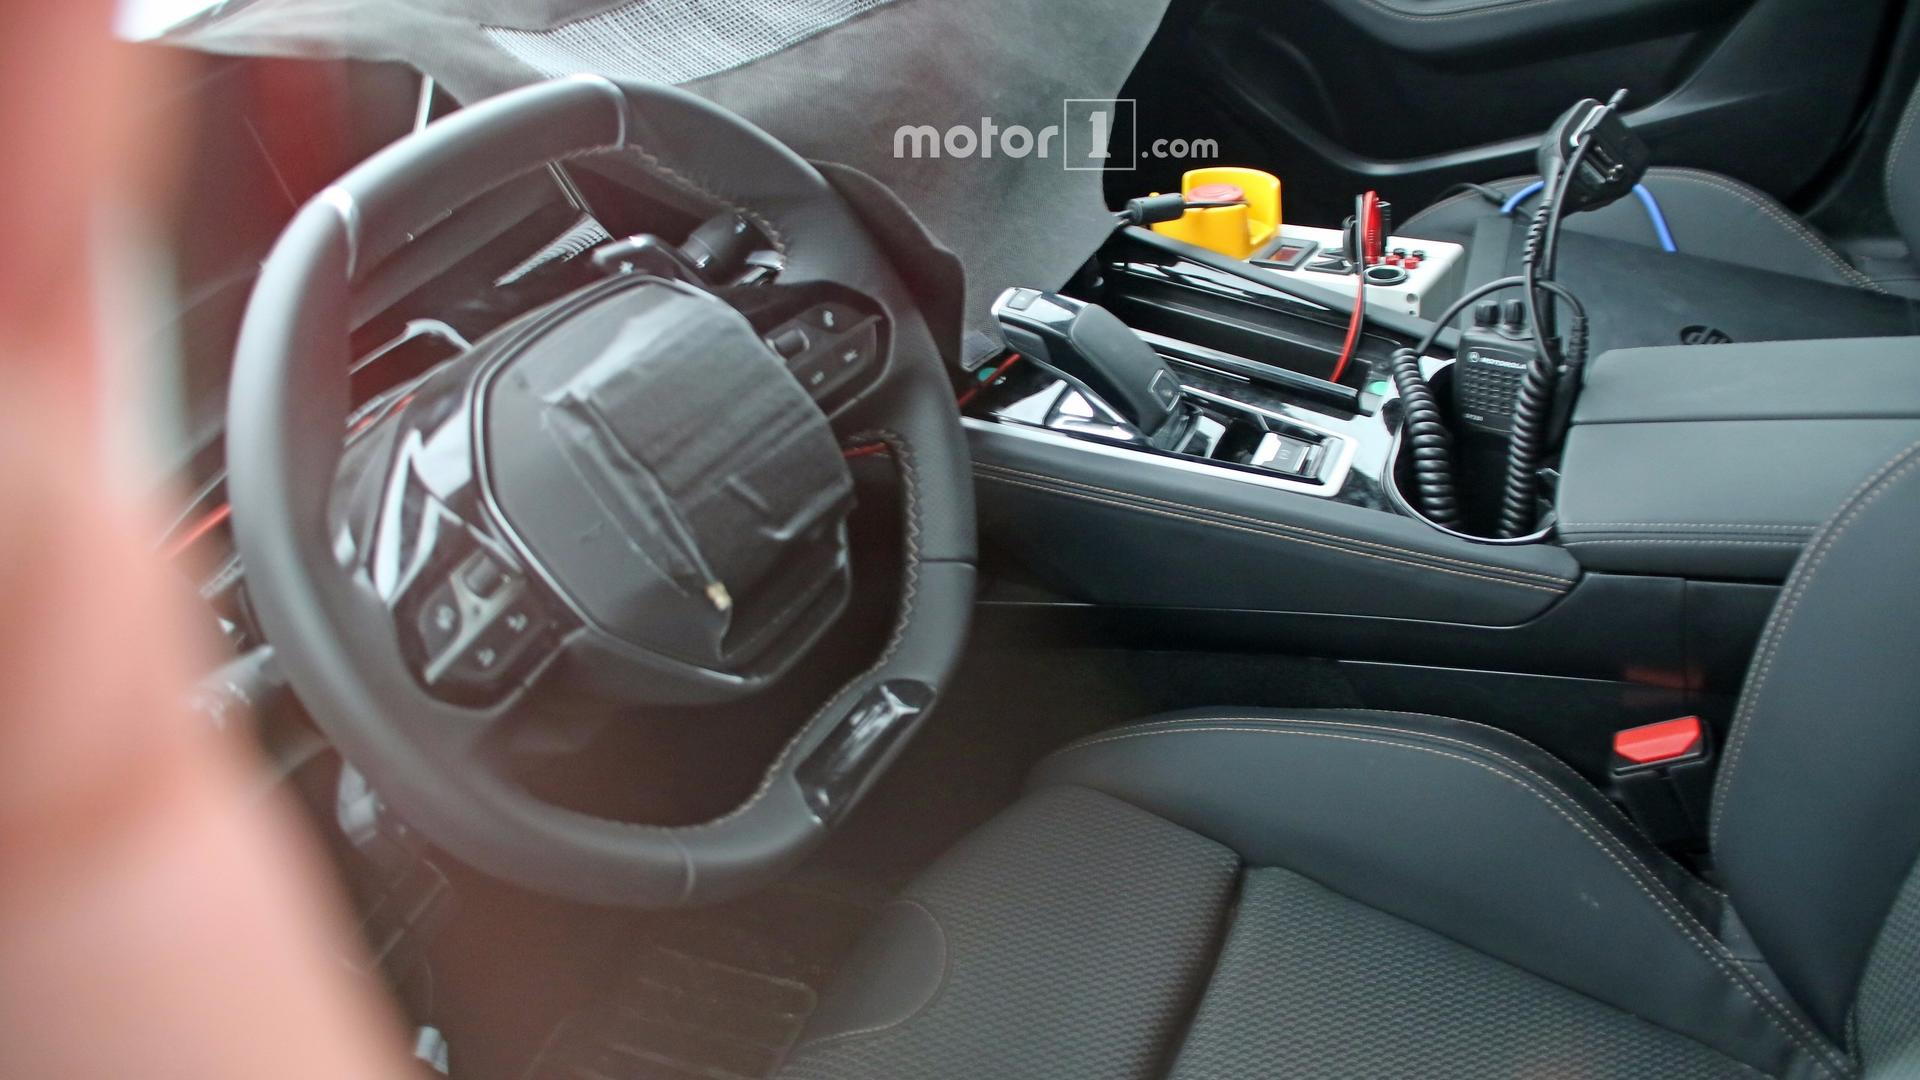 2018 peugeot 508 spied inside for the first time for Interior 508 peugeot